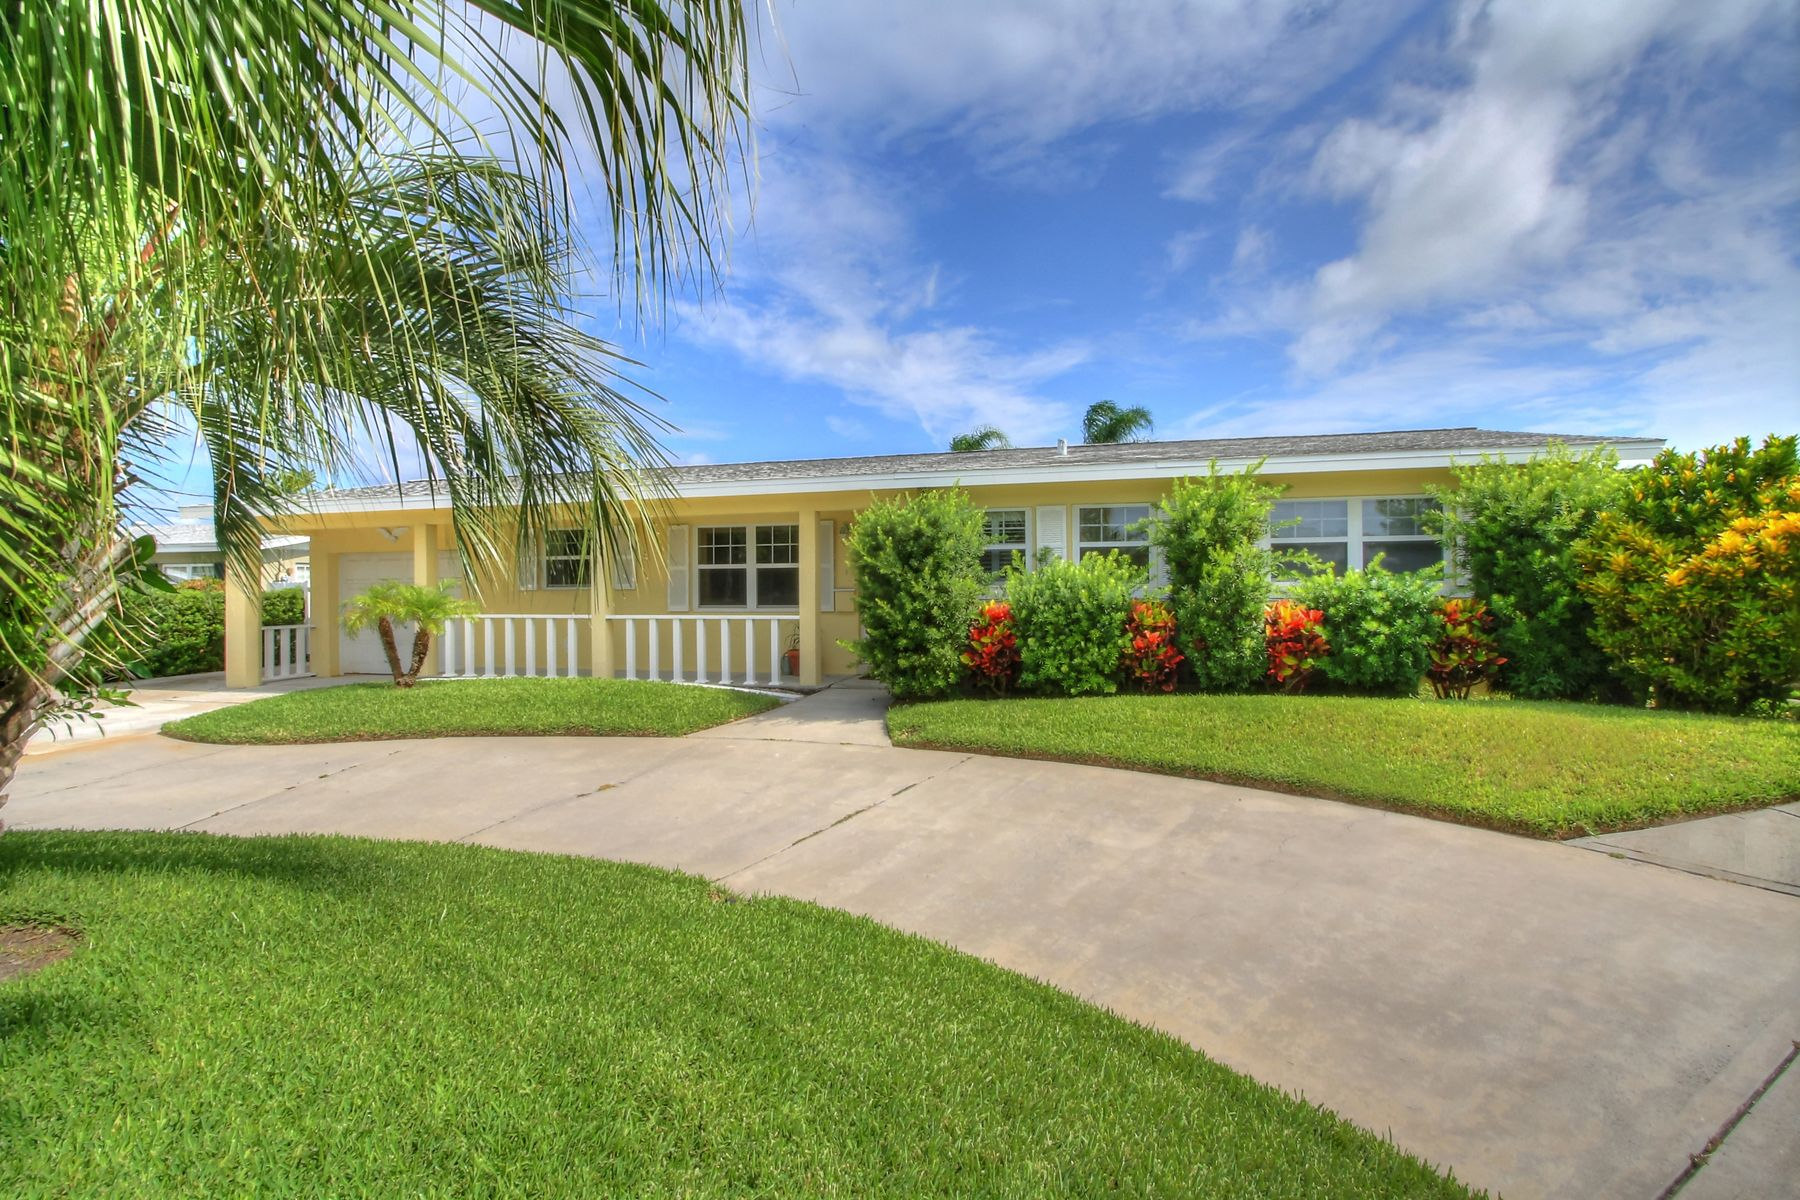 Beachside canal house not listed in mls per seller